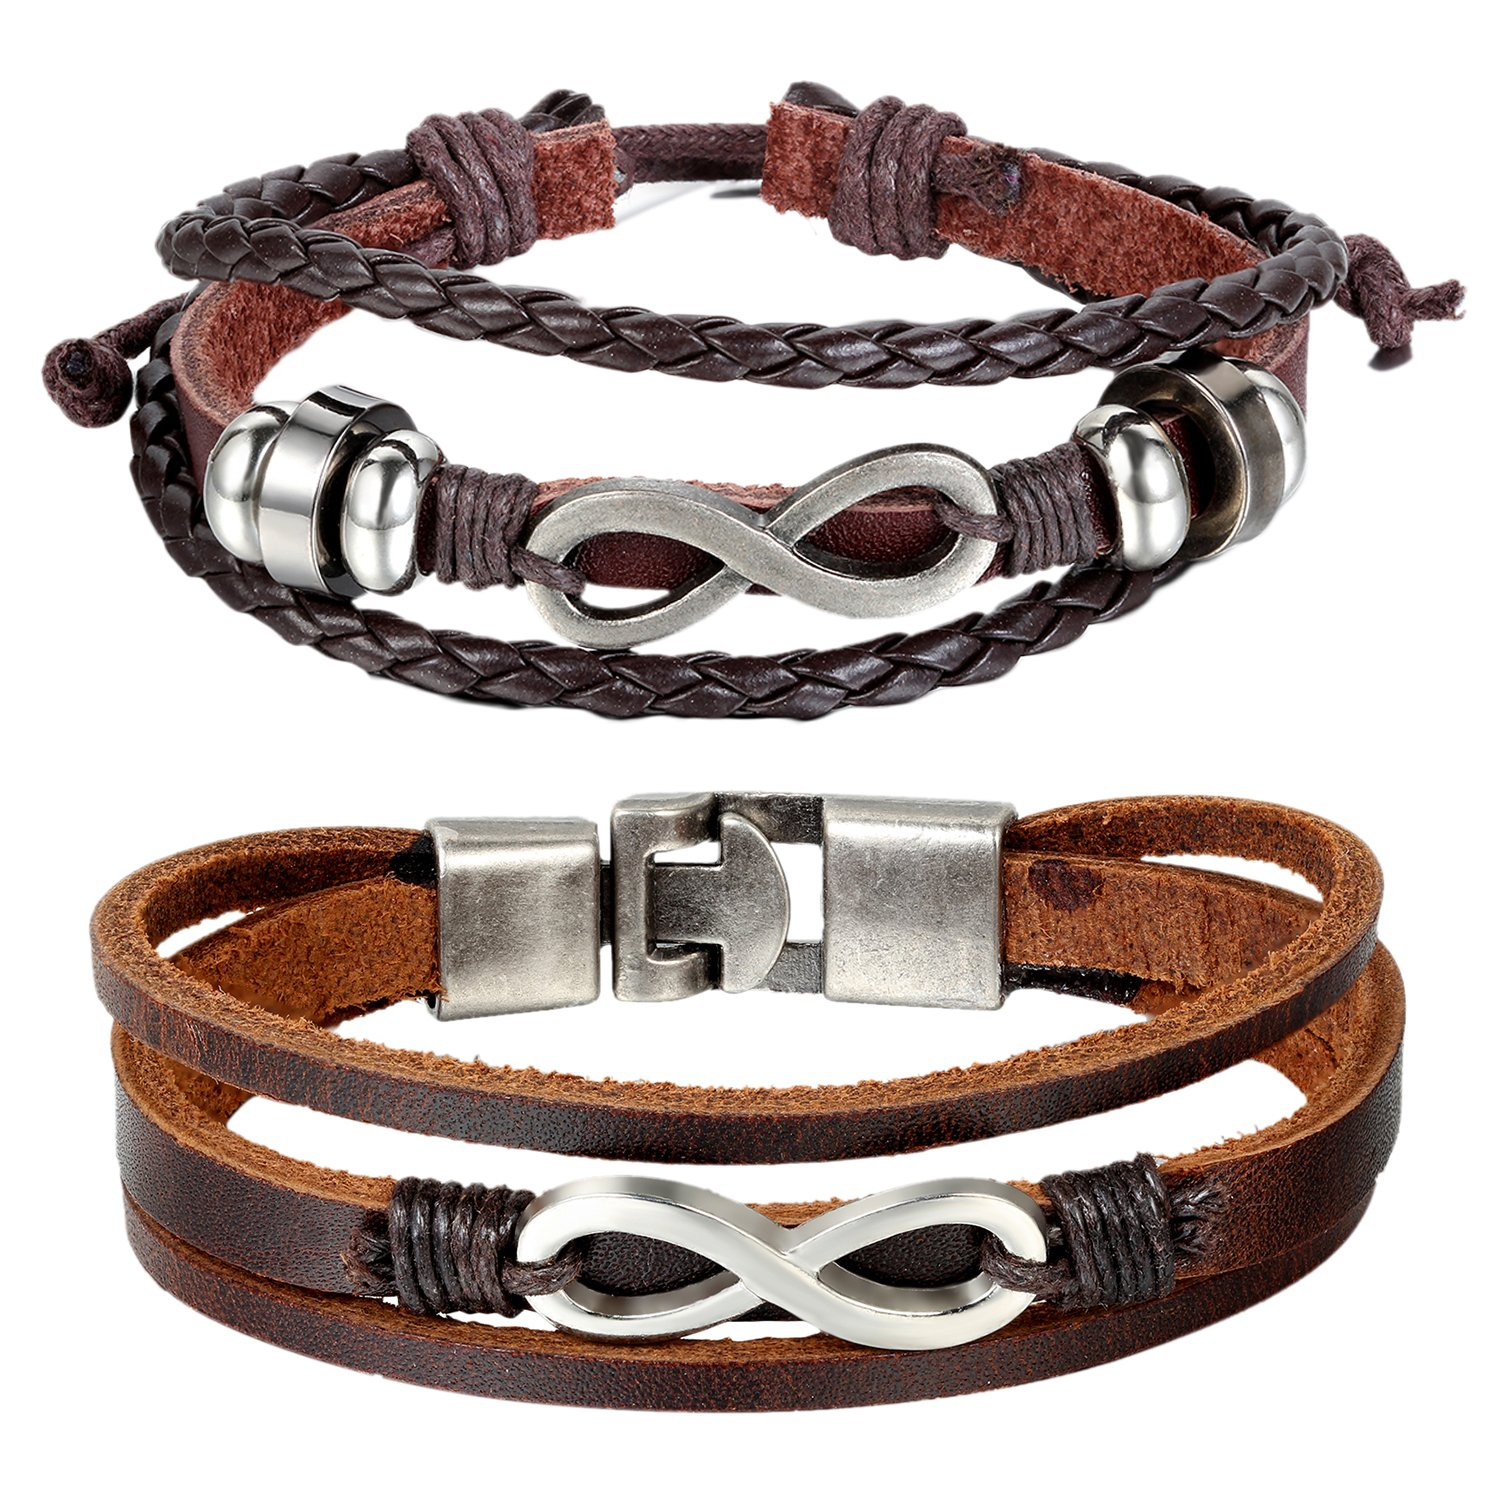 Cupimatch 2PCS Set Couples Leather Bracelet Cuff Love Infinity Charm Bangle for Men Women C004014